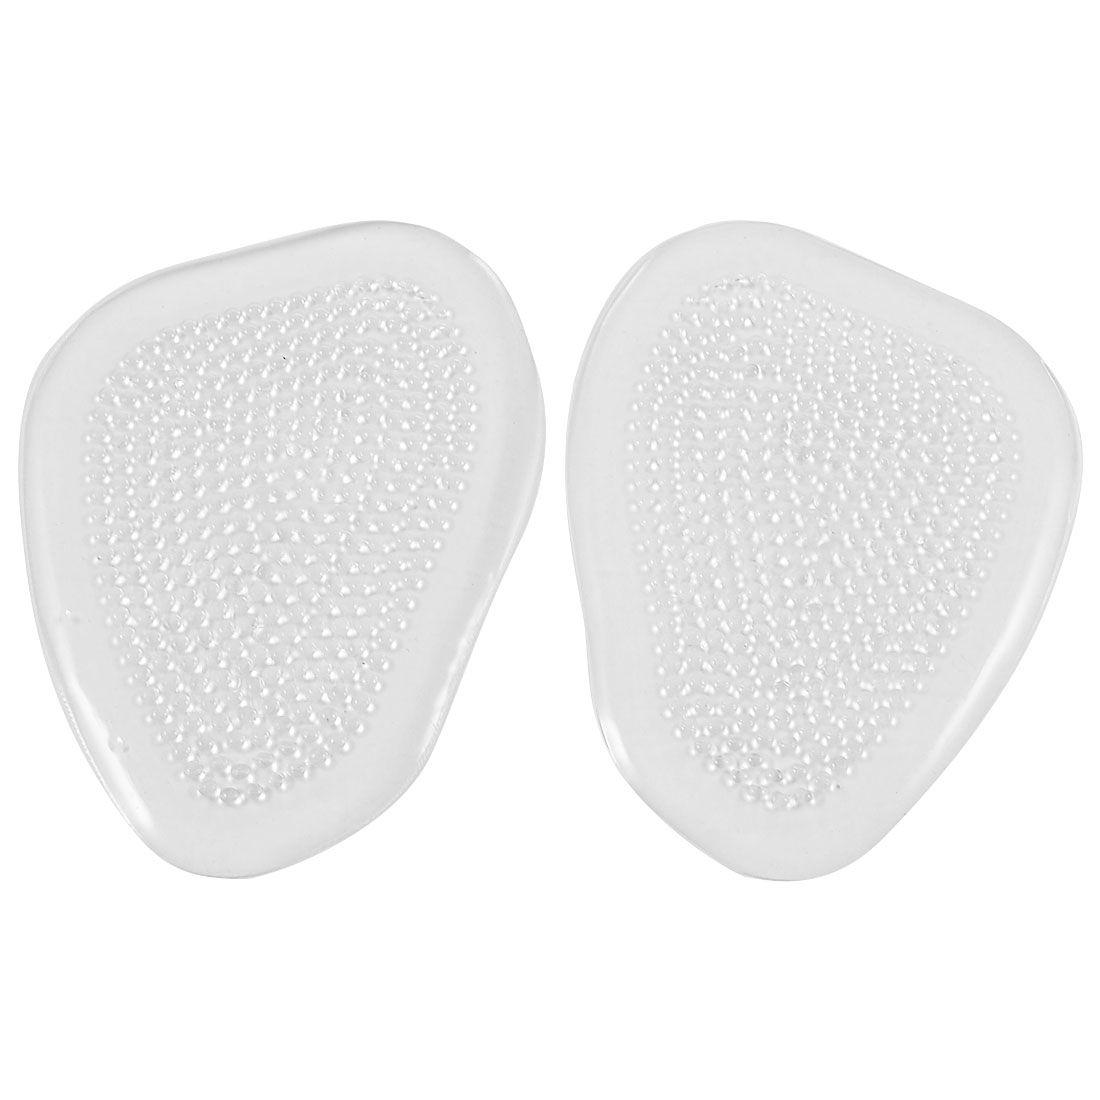 Clear Antislip Soft Silicone Ball Of Foot High Heel Shoes Cushion Metatarsal Pad